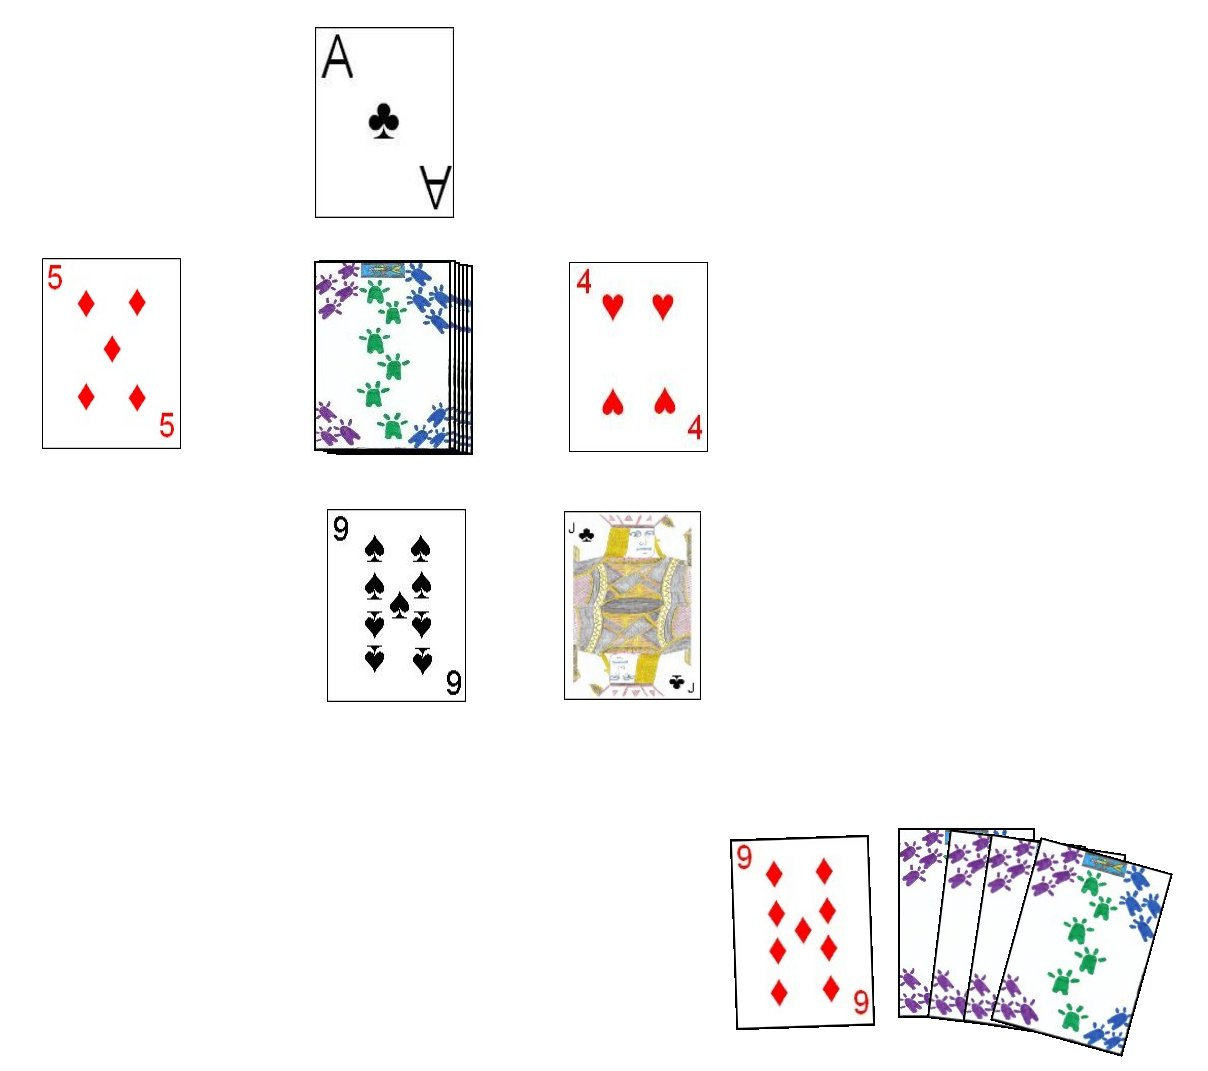 In This Example Layout For The Game Chinese Go Fishing, The Player Could  Capture Three Cards In Playing His Nine; The Five Of Diamonds, Four Of  Hearts And